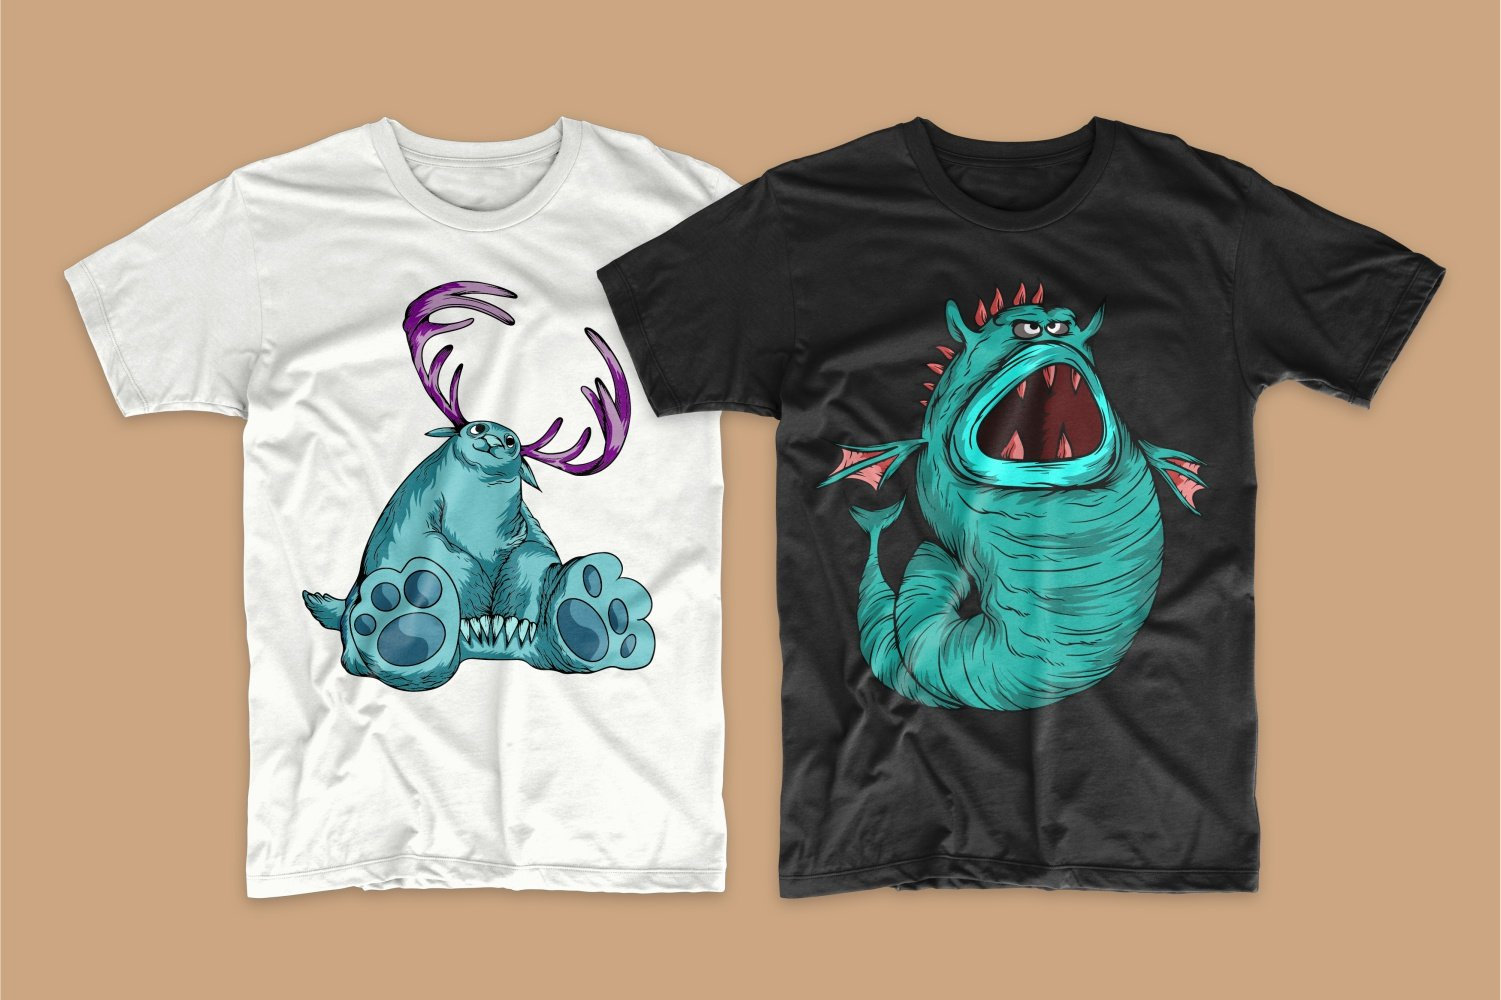 A white T-shirt with a turquoise Loch Ness monster with horns and a black one with a sea monster.